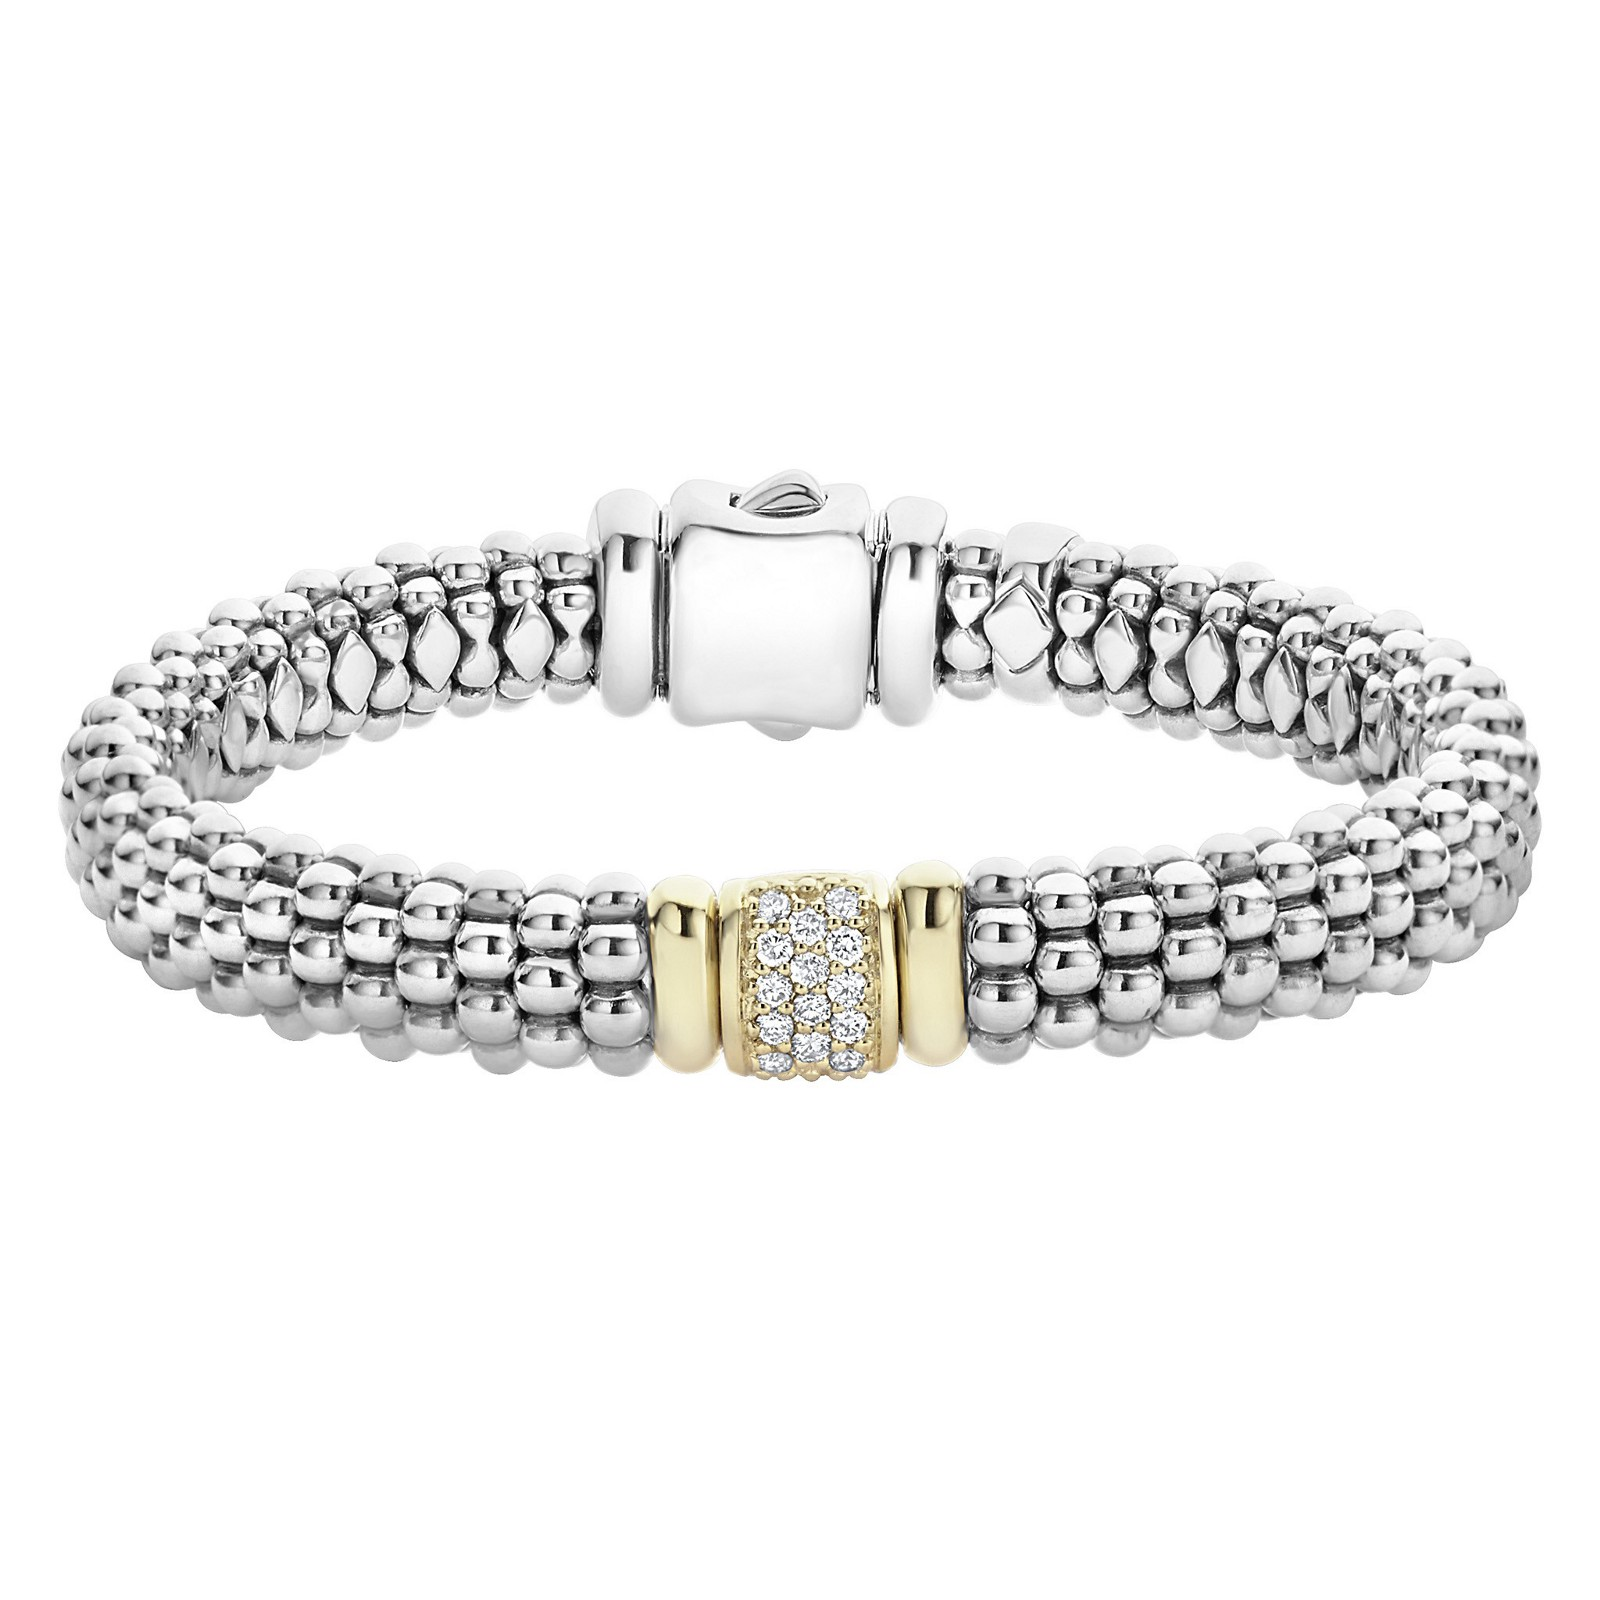 It Is Possible To Acquire Silver Bracelets Or Gold Diamond At Reasonable Prices Because There Are Various Online